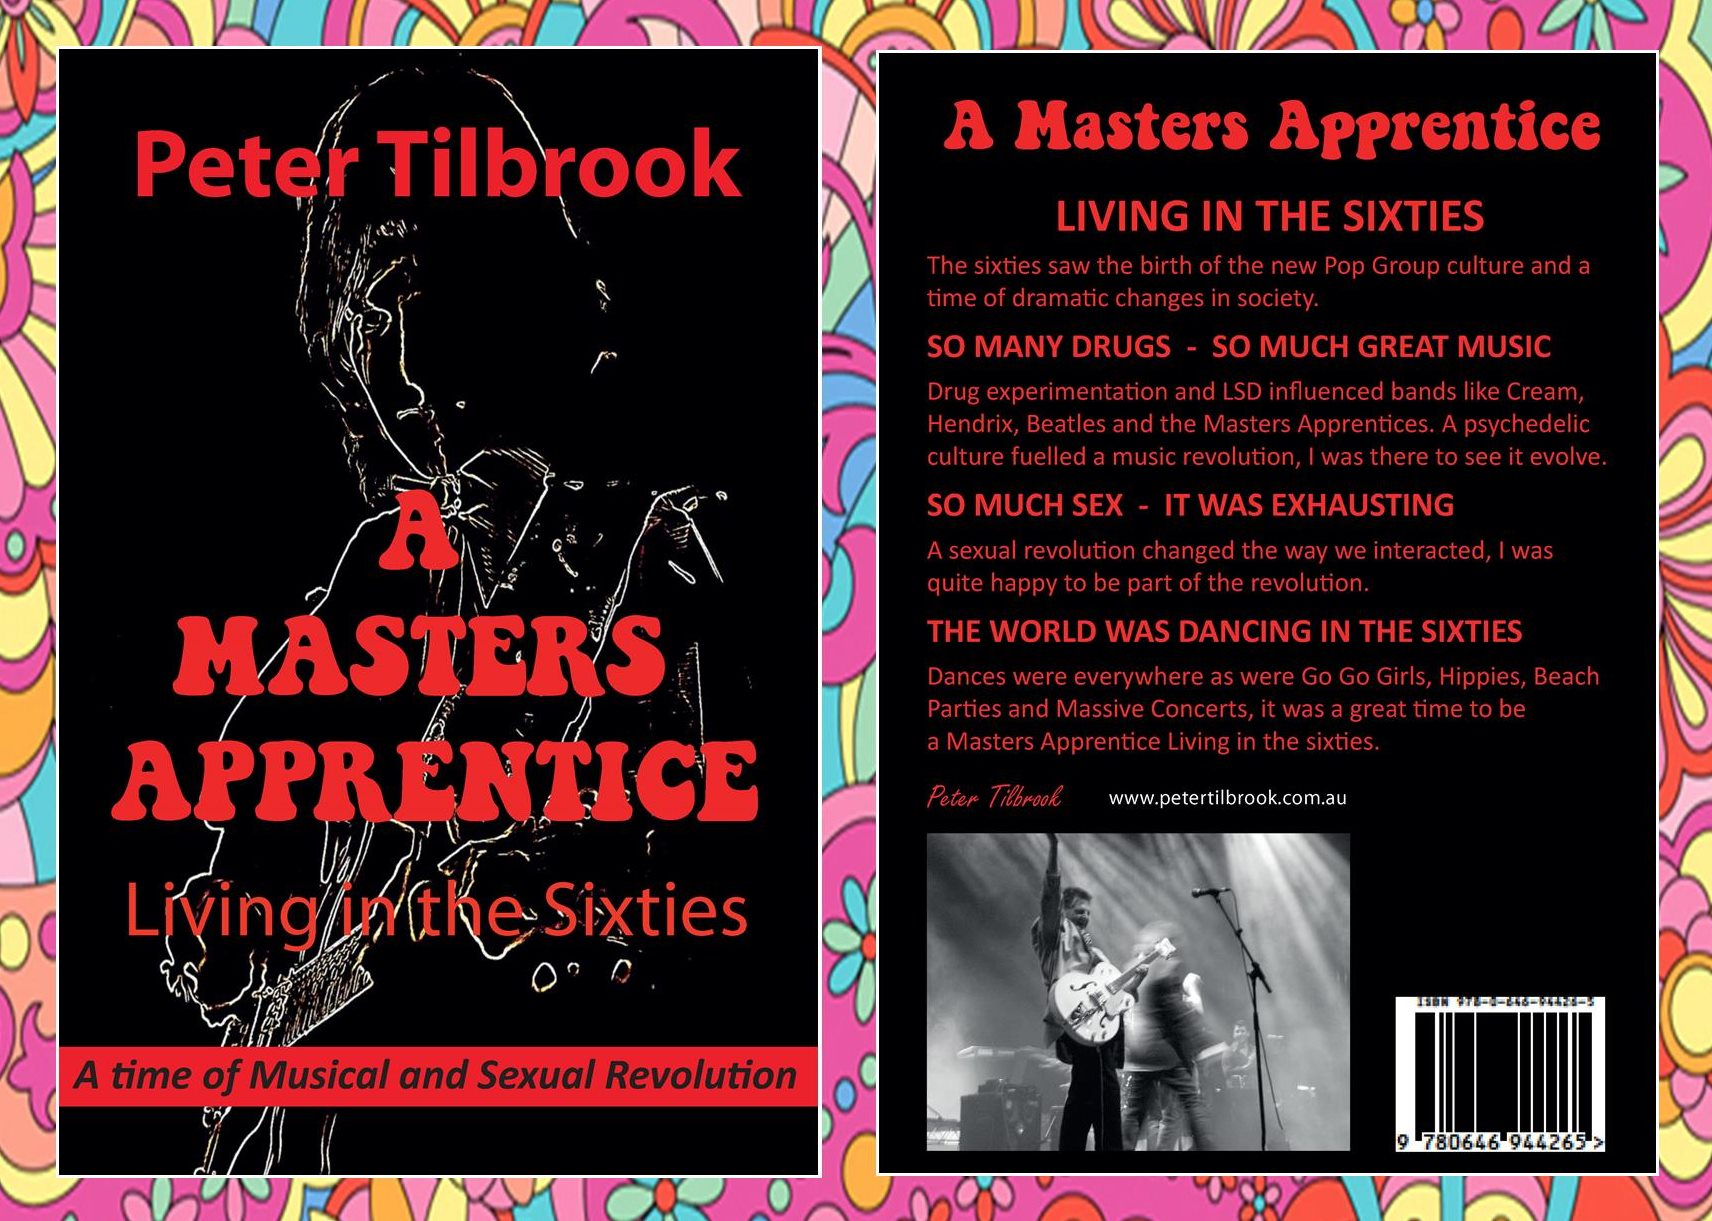 BOOK_COVER_____FRONT_AND_BACK____ON_PSYCH_PAPER.jpg